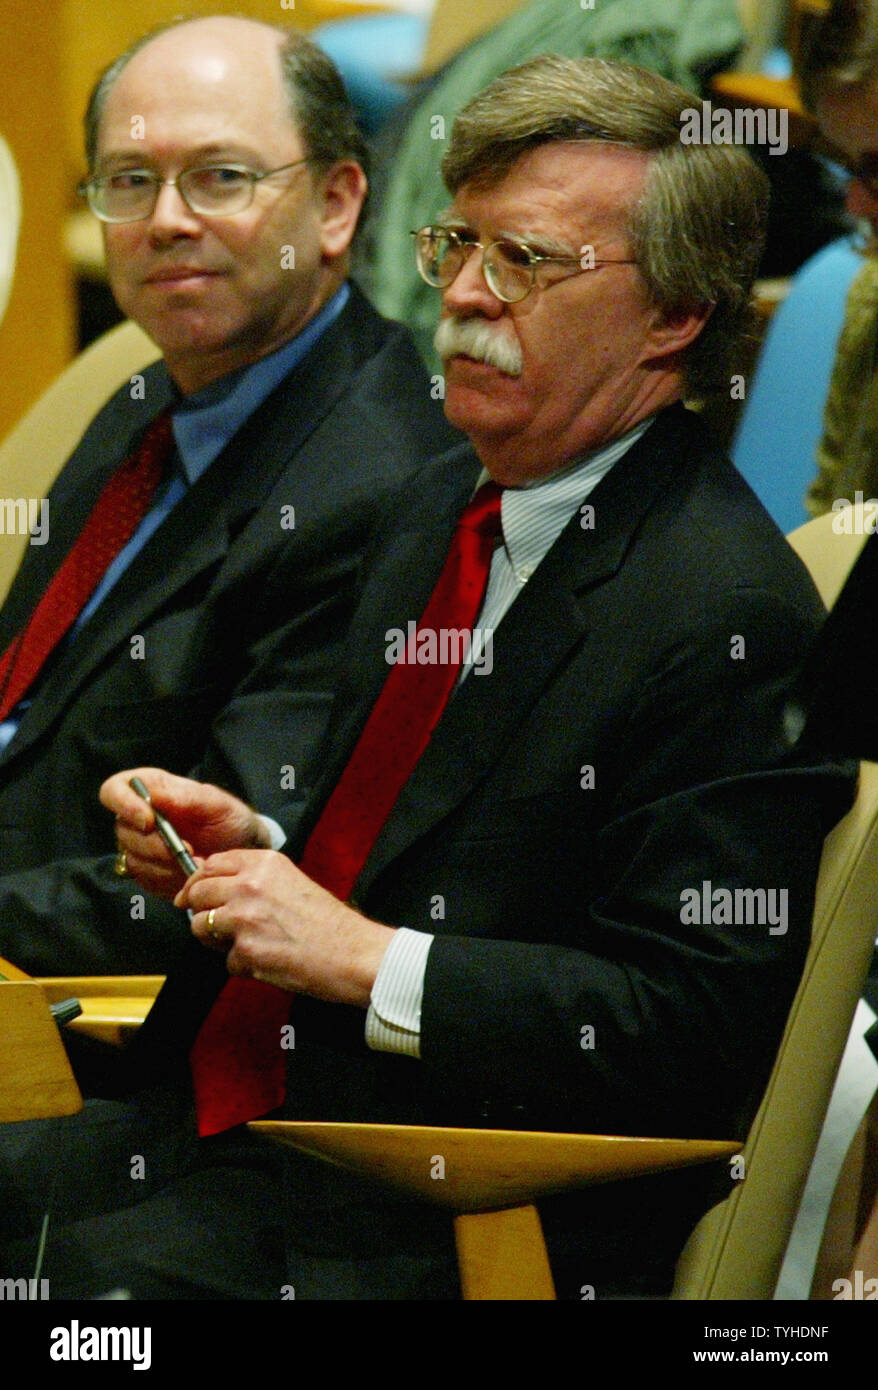 United State's ambassador to the United Nations John Bolton, left, discusses his vote against the creation of a new United Nations Human Rights Council during the General Assembly meeting at the UN on March 15, 2006 in New York City. The resolution passed by 170 to 4 votes. (UPI Photo/Monika Graff) - Stock Image